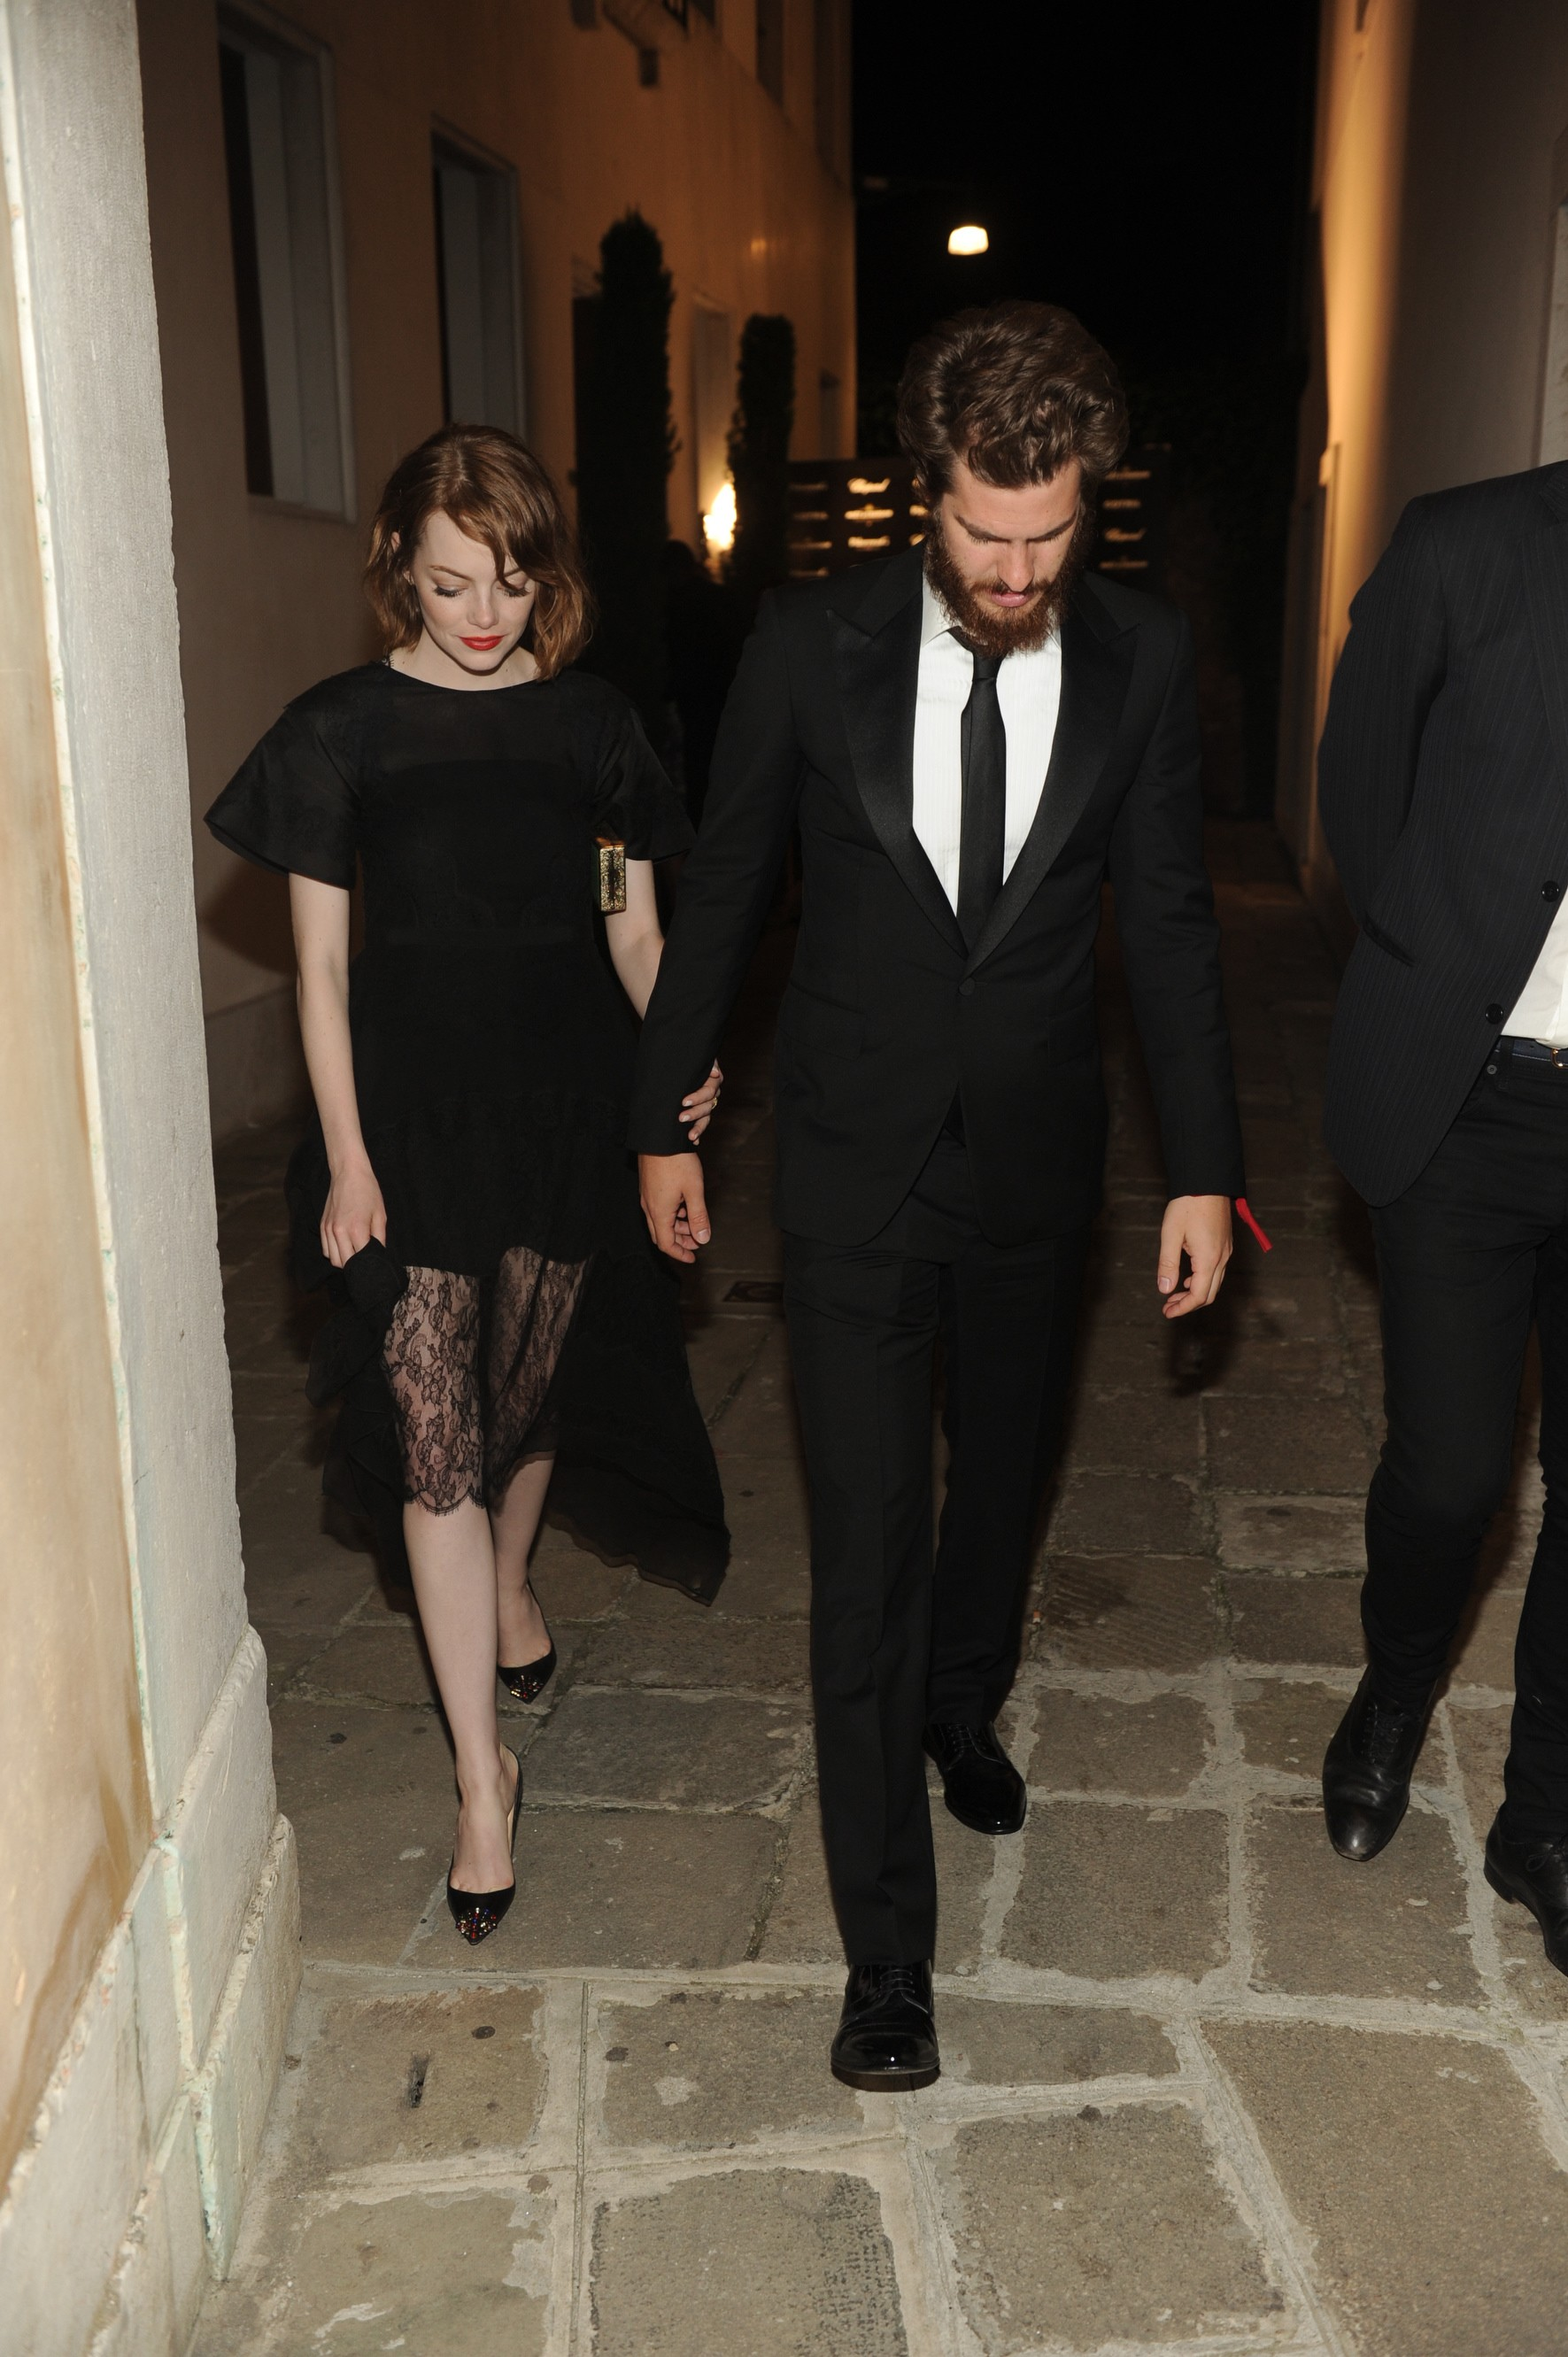 Emma Stone and Andrew Garfield attend The PalazzinaG Hotel's 71st Venice Film Festival Dinner & Party sponsored by Chopard, Moët Chandon and Cotril